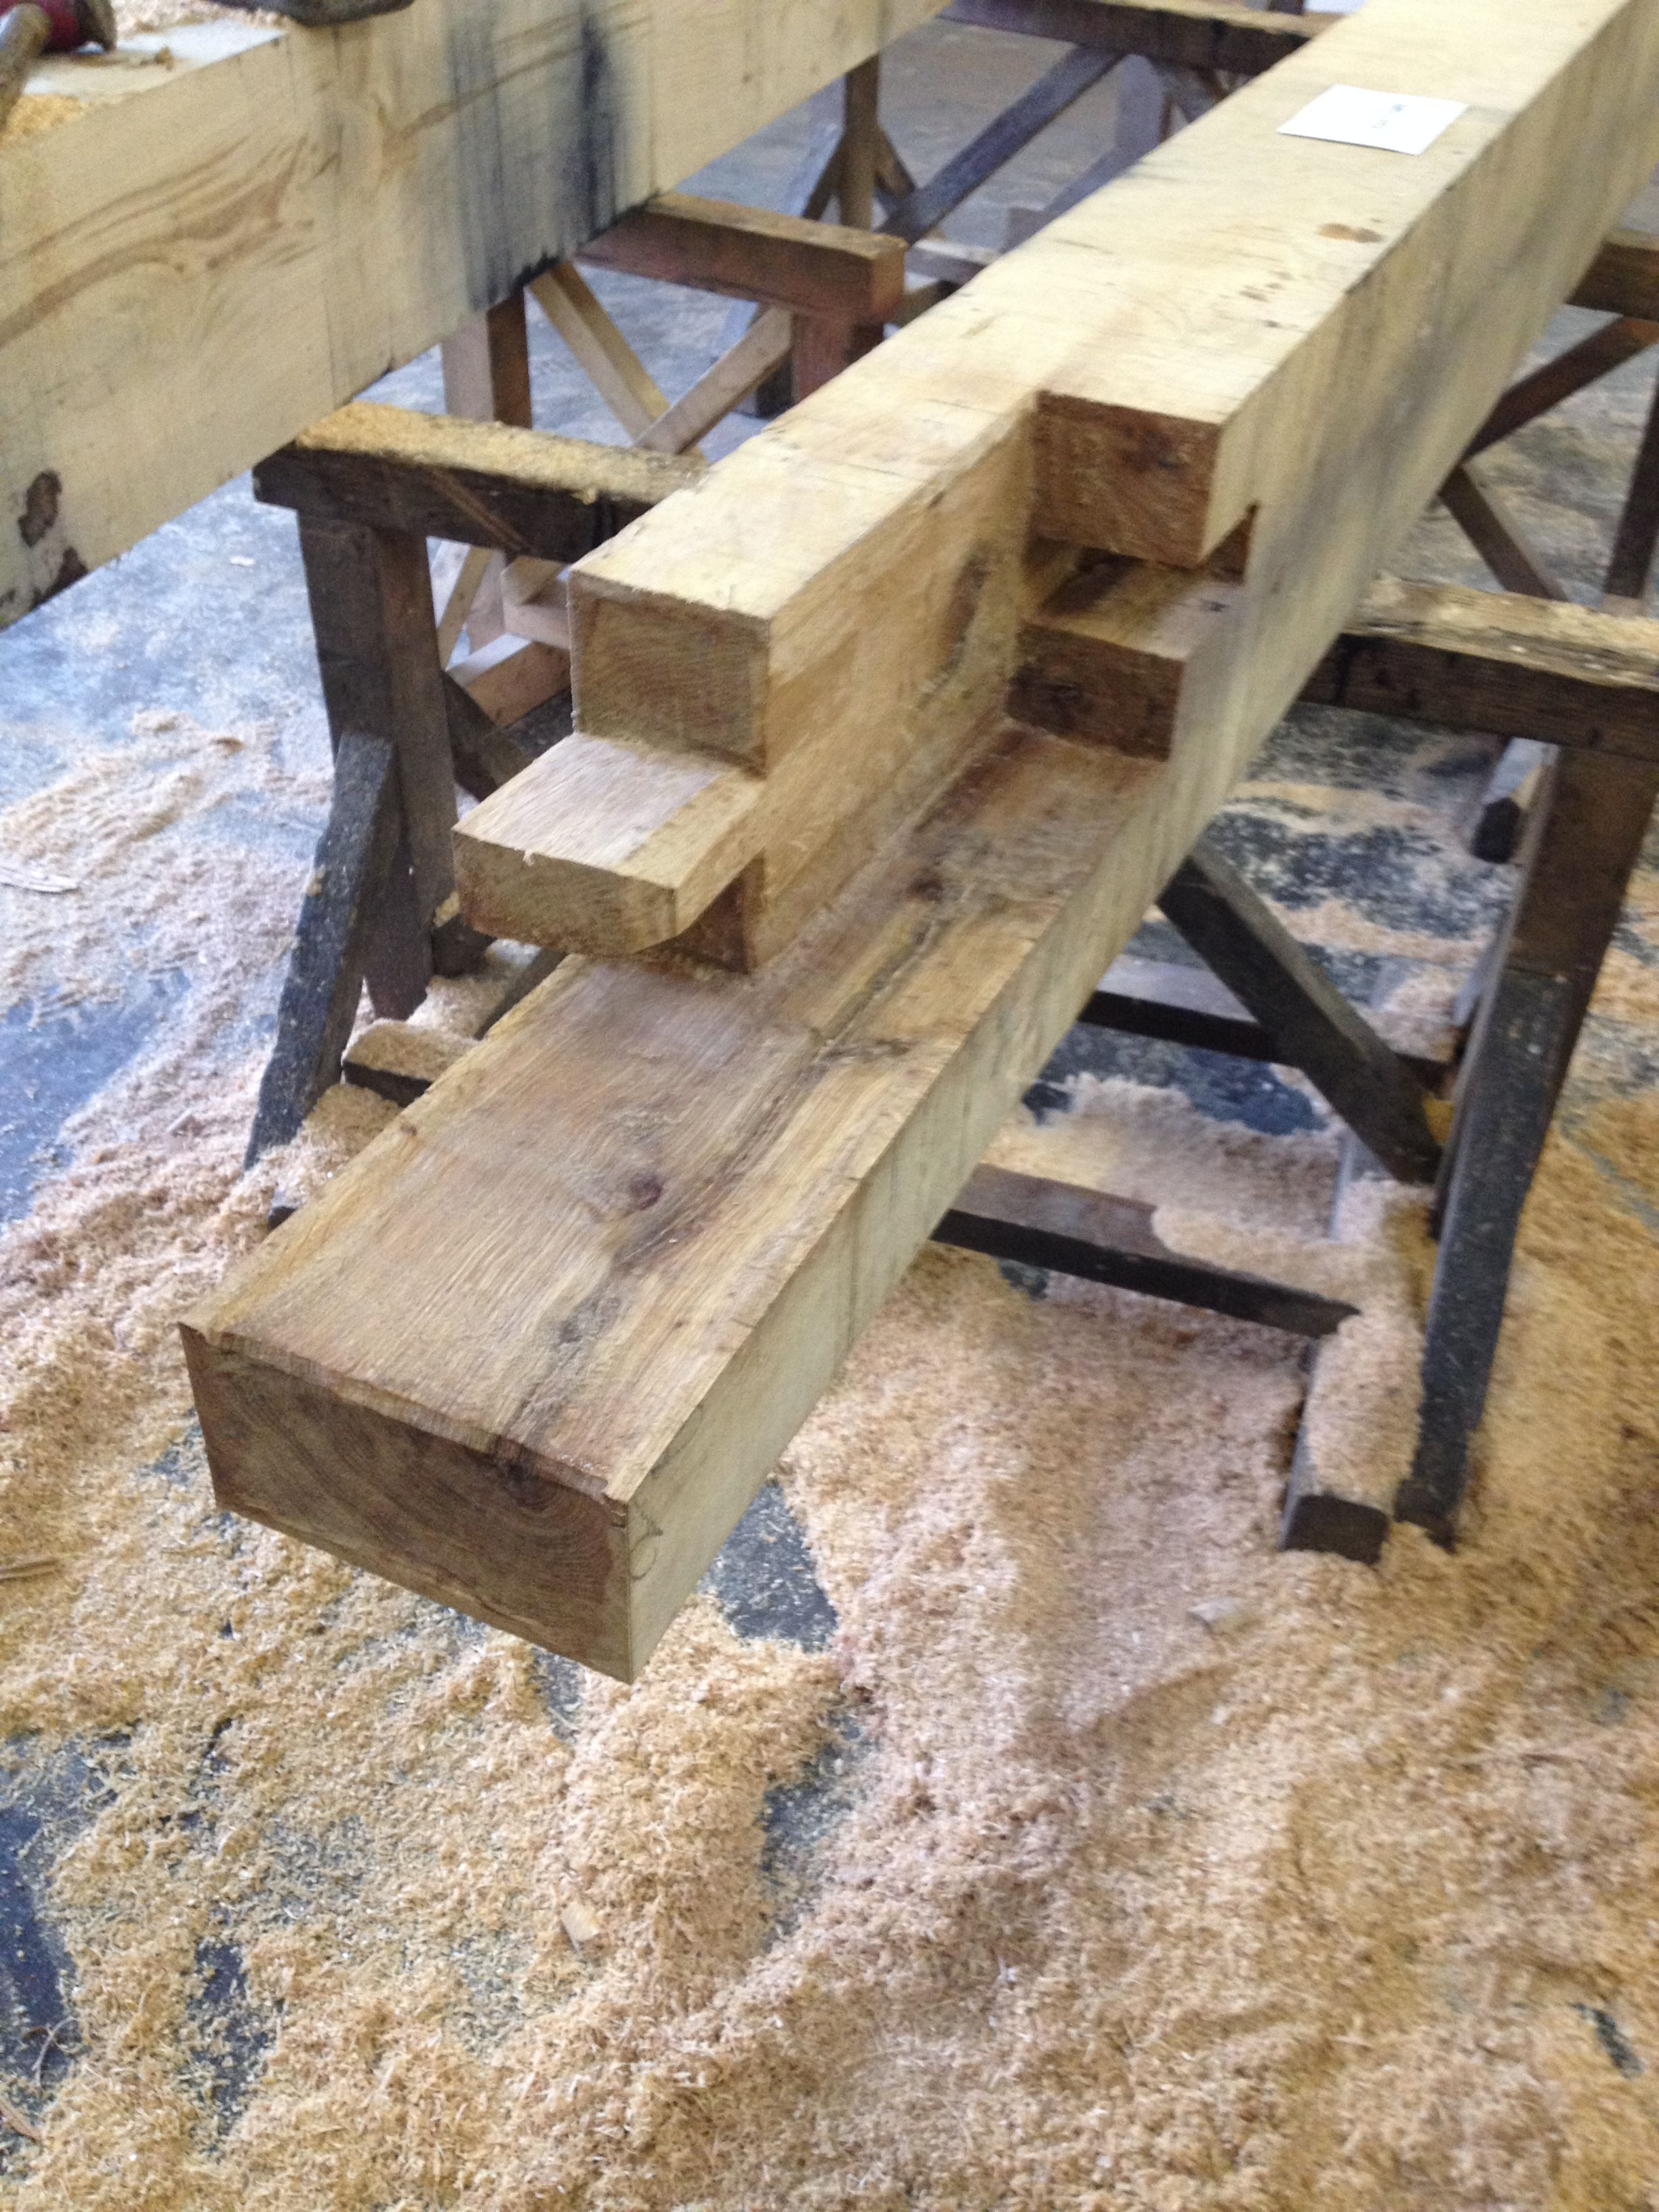 Completed this interesting Edge Half Scarf Joint